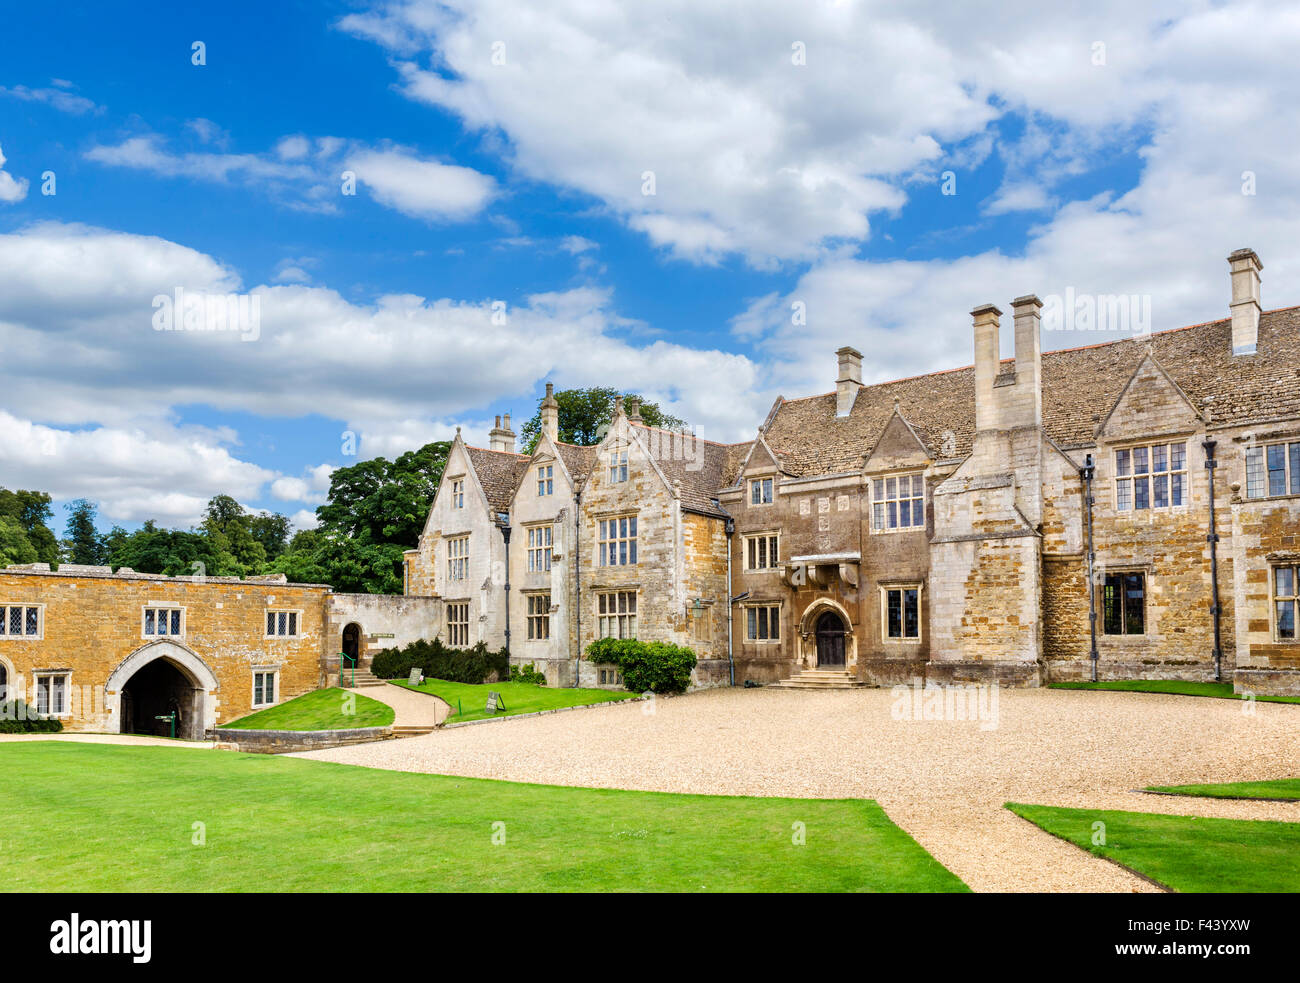 The courtyard and entrance to Rockingham Castle, near Corby, Northamptonshire, England, UK - Stock Image